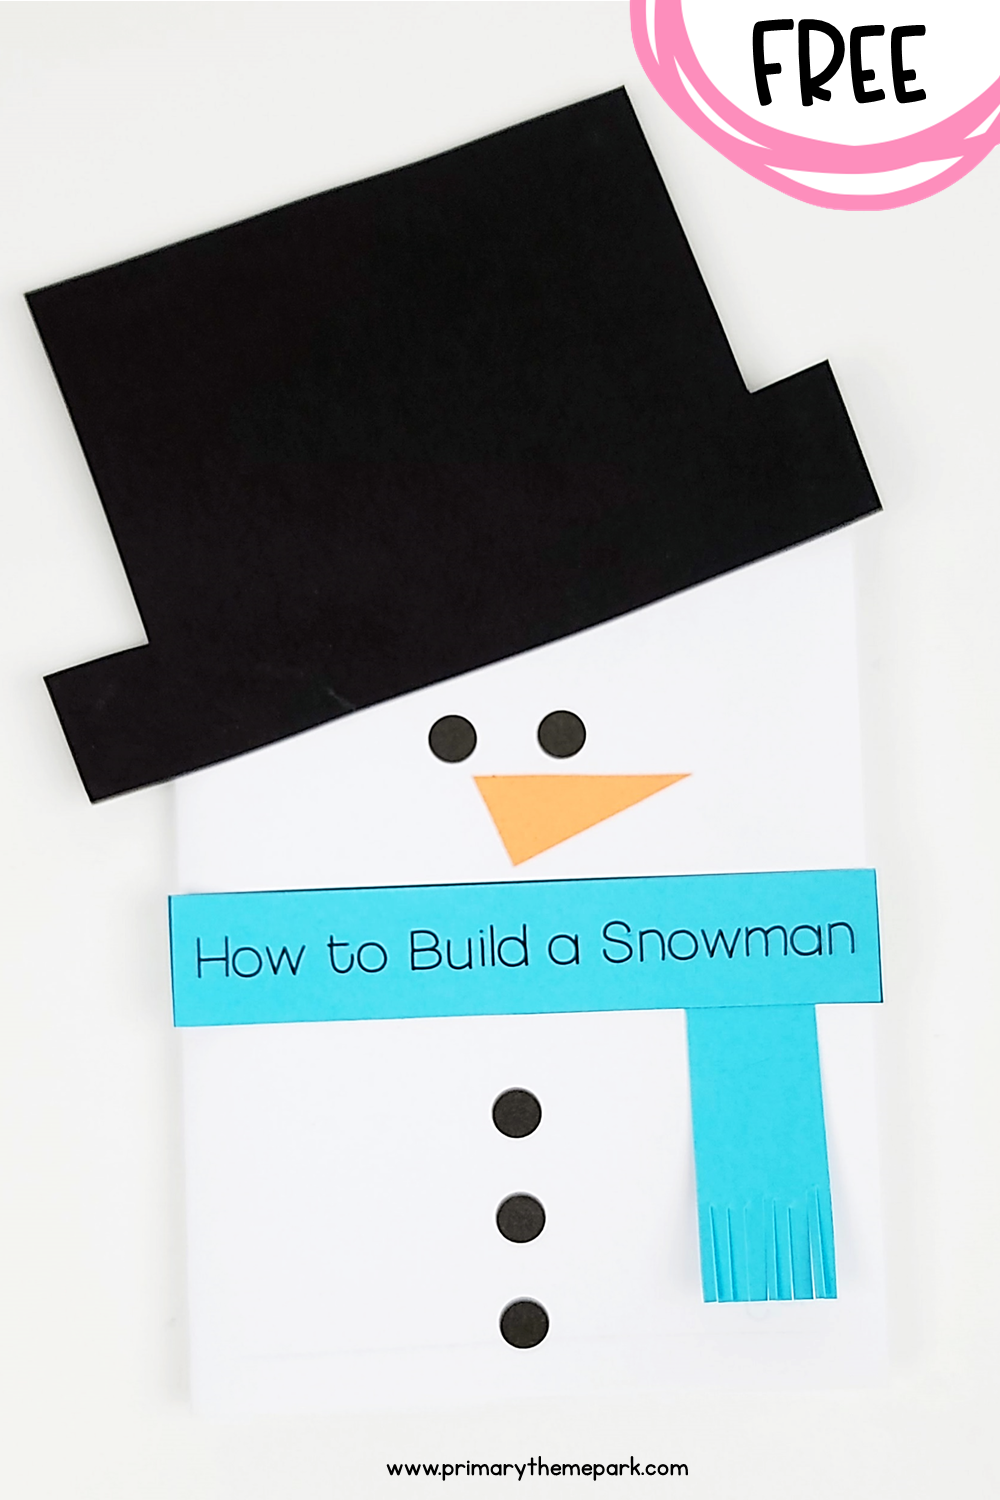 Free How to Build a Snowman Writing Activity for Kids